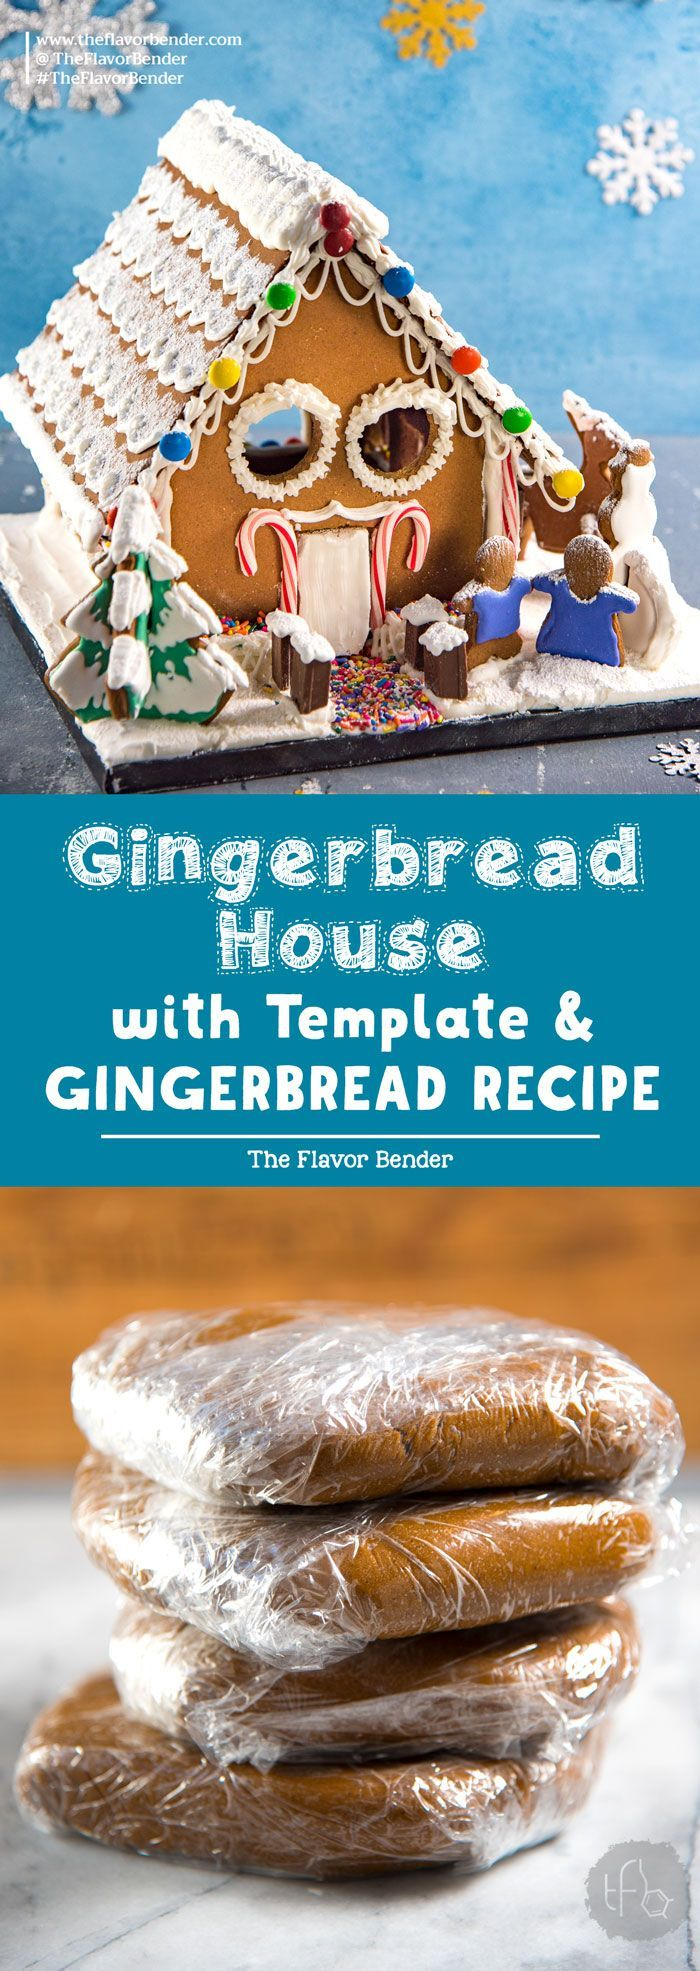 Gingerbread House with template and gingerbread recipe - an easy gingerbread house template perfect to build and decorate with family!